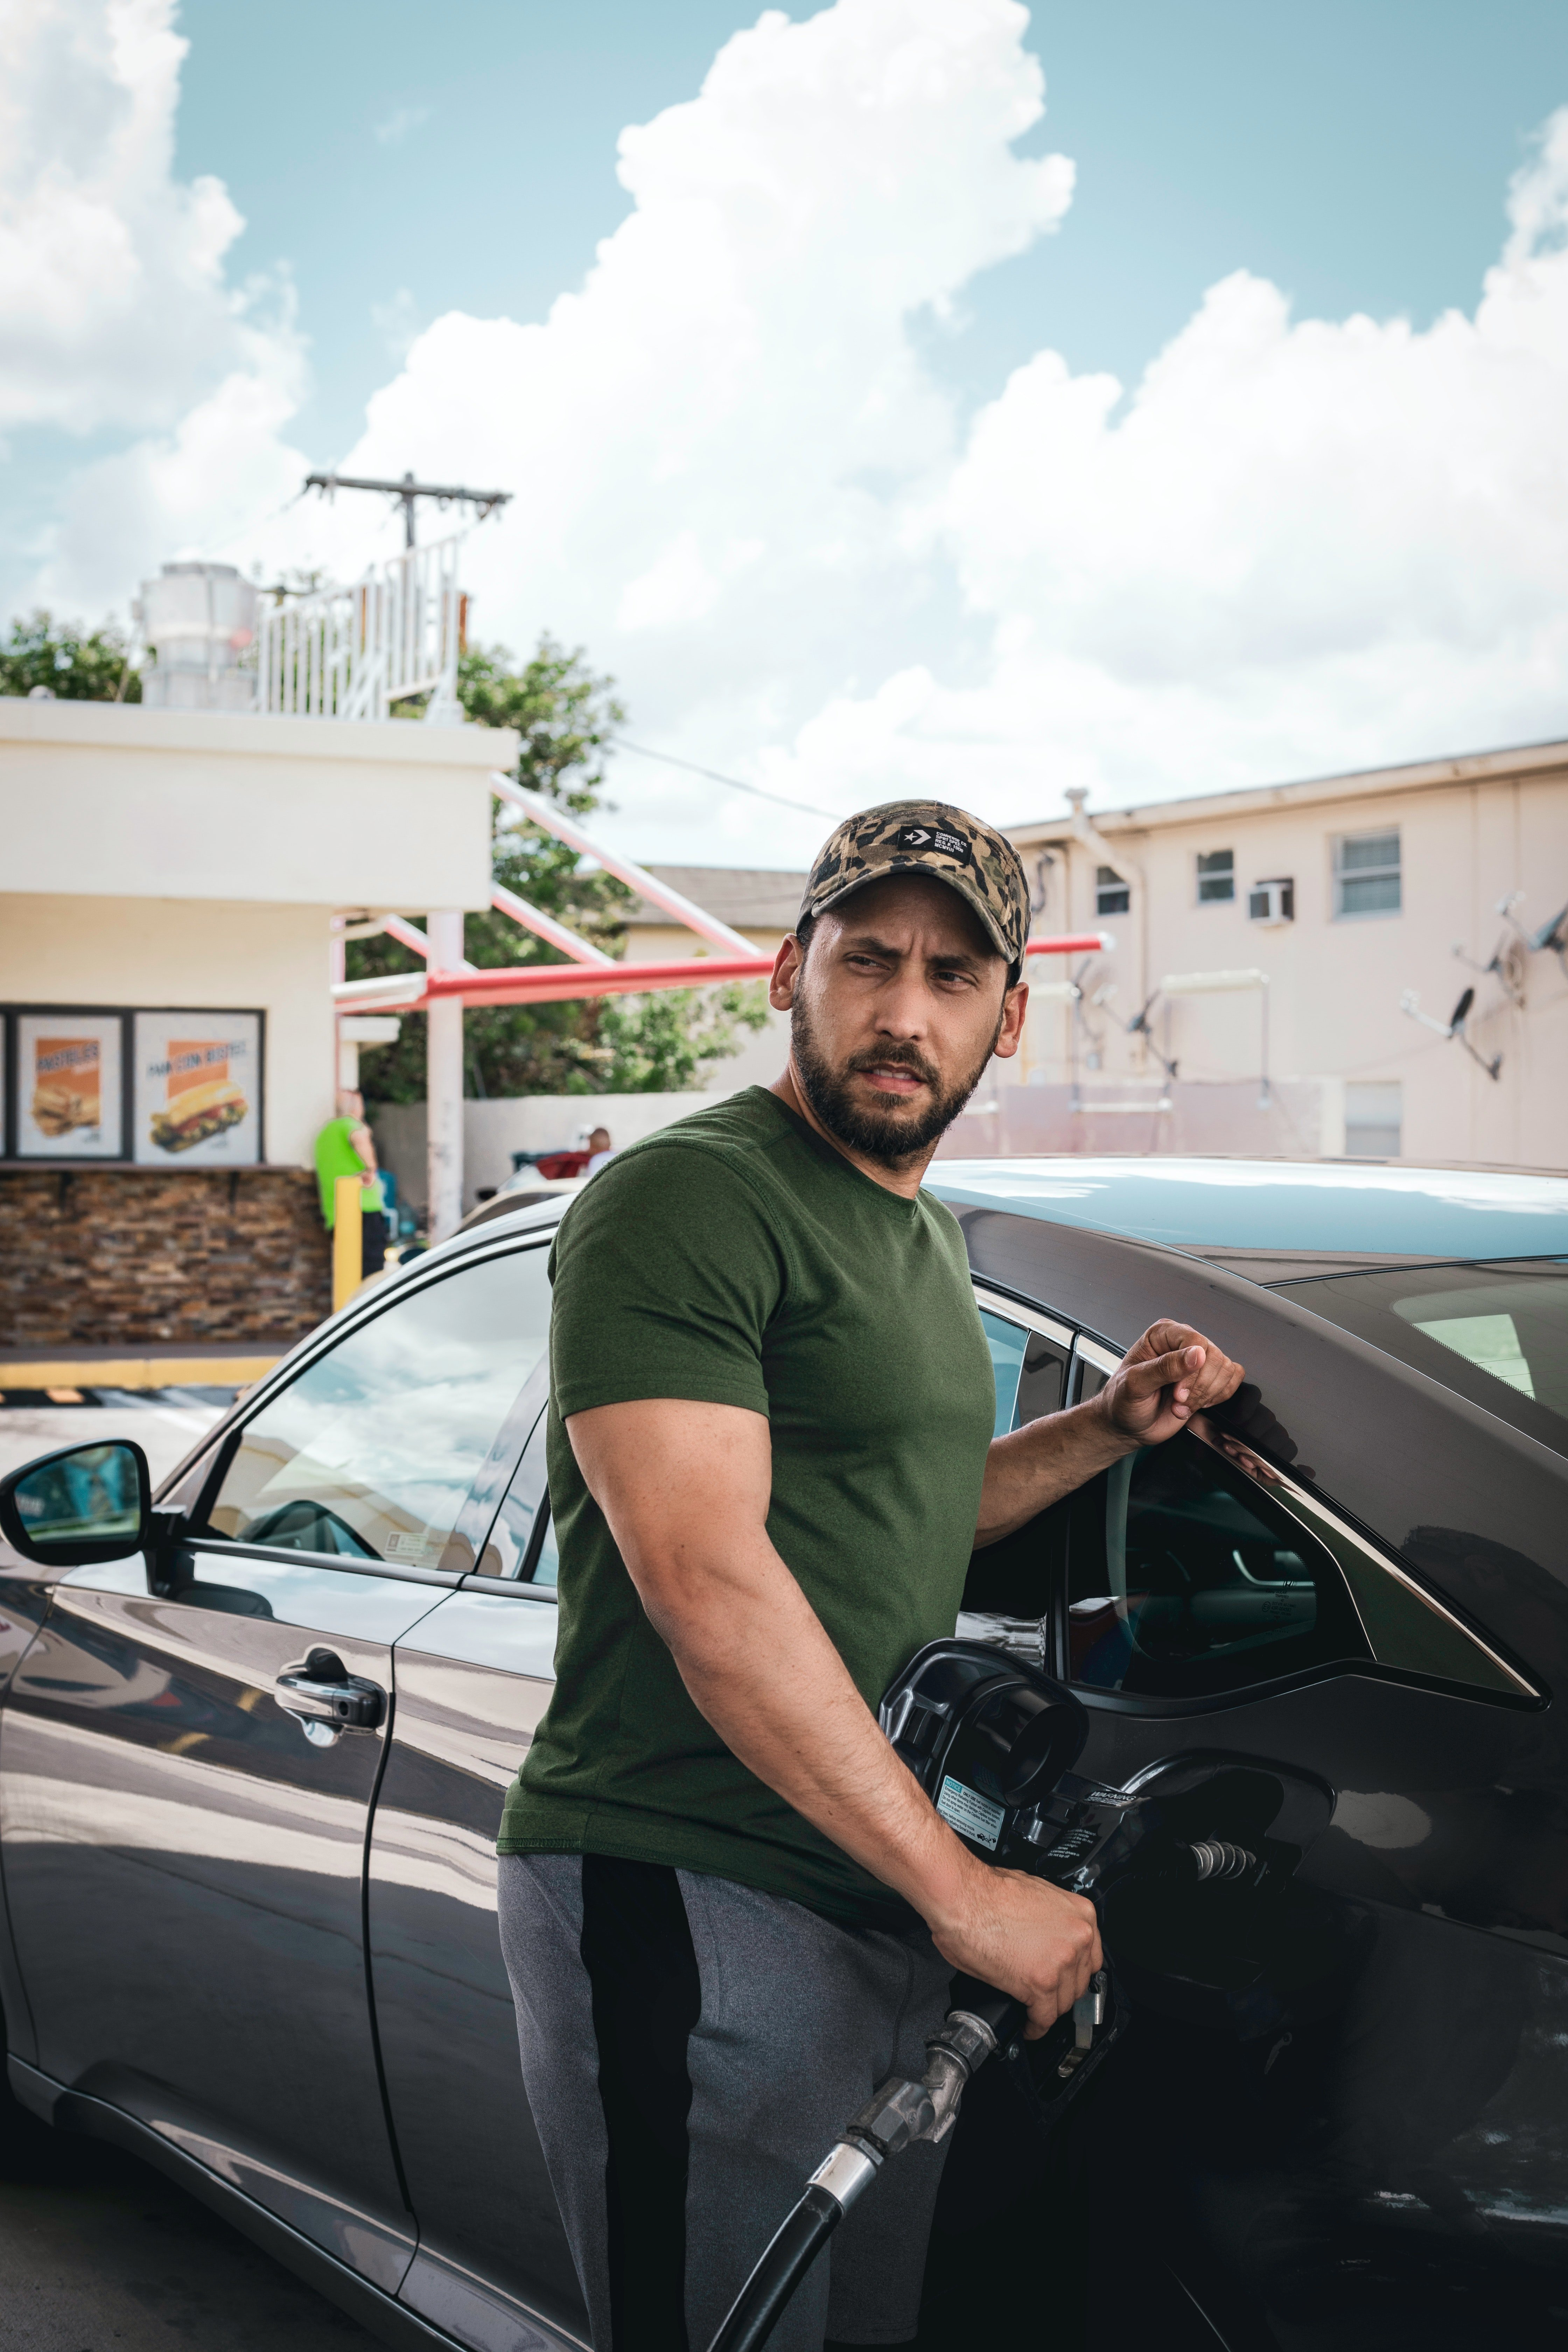 A man fills up his car with fuel at a gas station | Pexels/One Shot